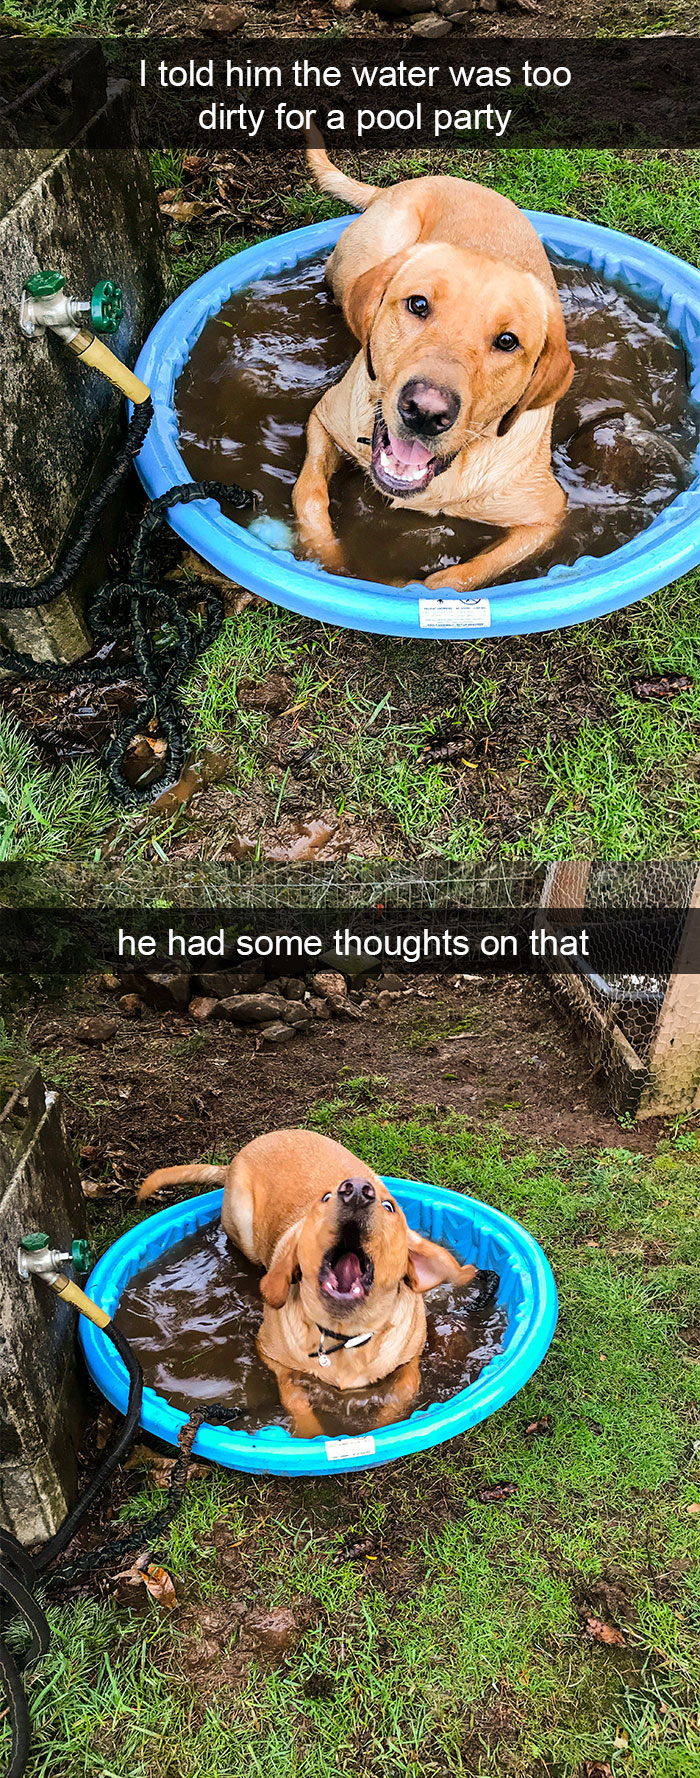 Dog - I told him the water was too dirty for a pool party he had some thoughts on that